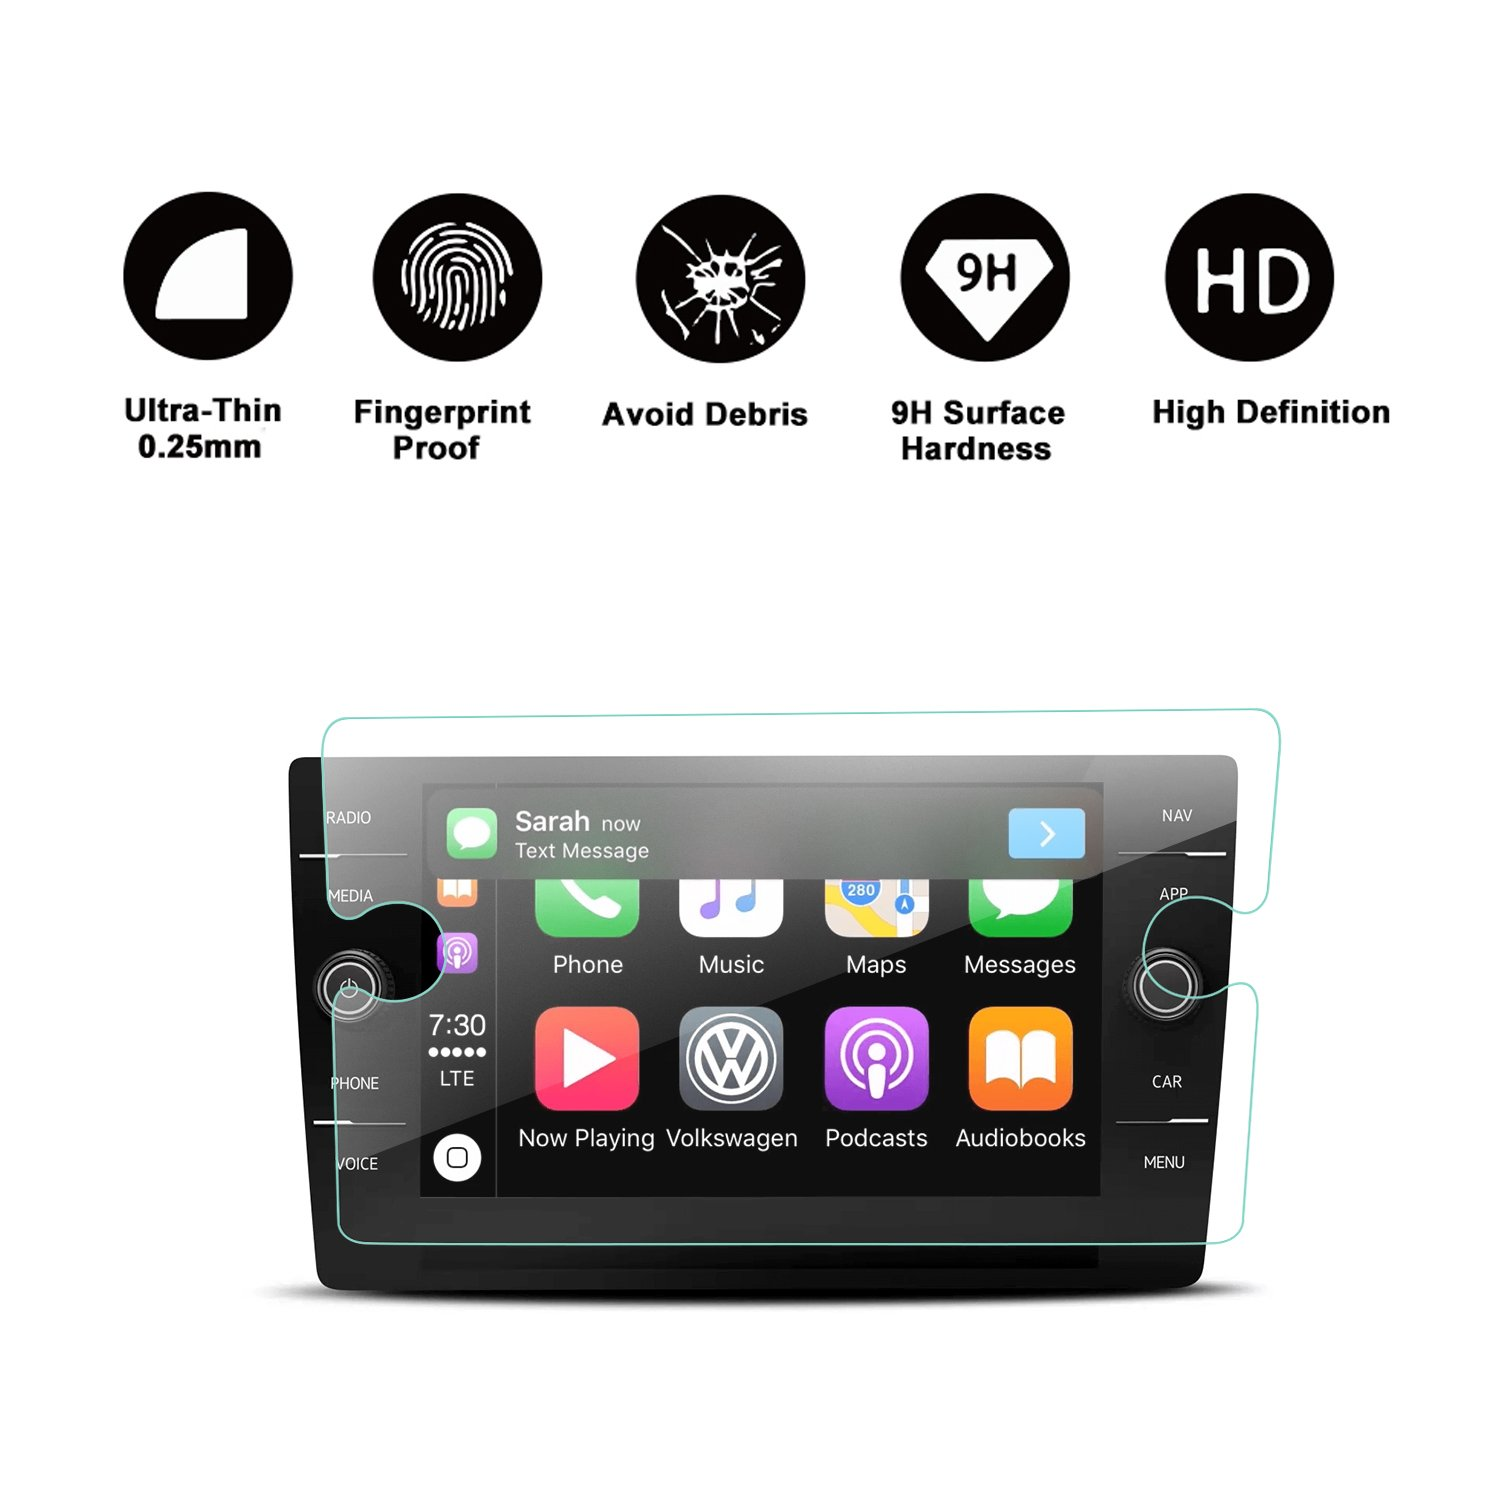 2018 Volkswagen Tiguan VW Touch Screen Car Display Navigation Screen Protector, R RUIYA HD Clear TEMPERED GLASS Car In-Dash Screen Protective Film (8-Inch)